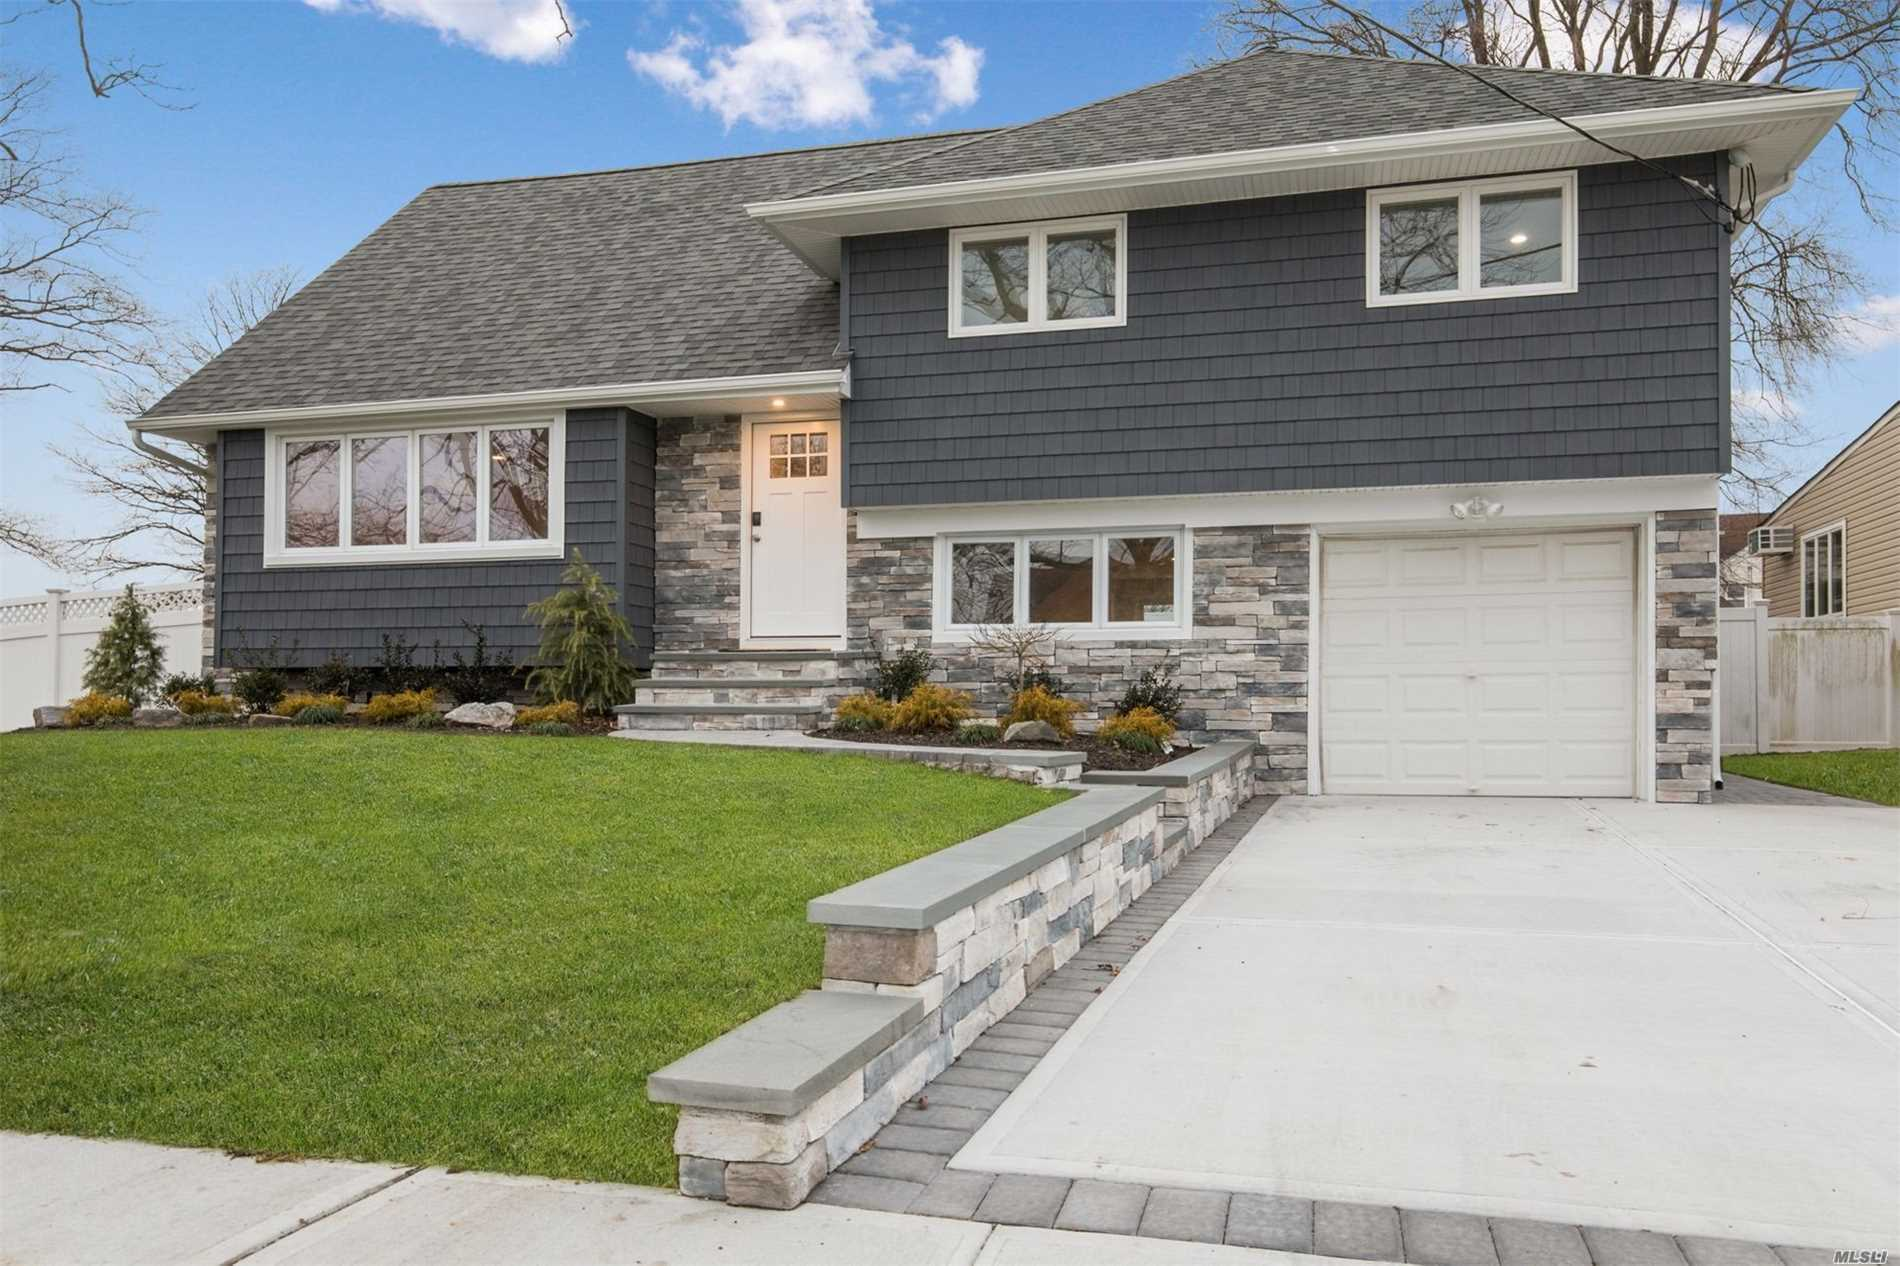 Diamond Condition 3/4 Bedroom Expanded Split On A 79 X 100 Lot. Home Features:Living Rm/Dining Rm W/Open Layout Concept, Hardwood Flrs, Quartz Kitchen & Island W/Stainless Steel Apps, 5 Ductless Air Conditioners & Sliders Leading To Rear Trex Deck.2nd Floor Has Bedroom With Walk-In Closet, Bedroom & Full Bath. Master Bedroom Suite W/Full Bath & Closets. Laundry Room, Garage, 200 Amp Electric, Pvc Fencing, In-Ground Sprinklers, New Siding W/Cultured Stone Brick Face, 2 Car Driveway & Low Taxes !